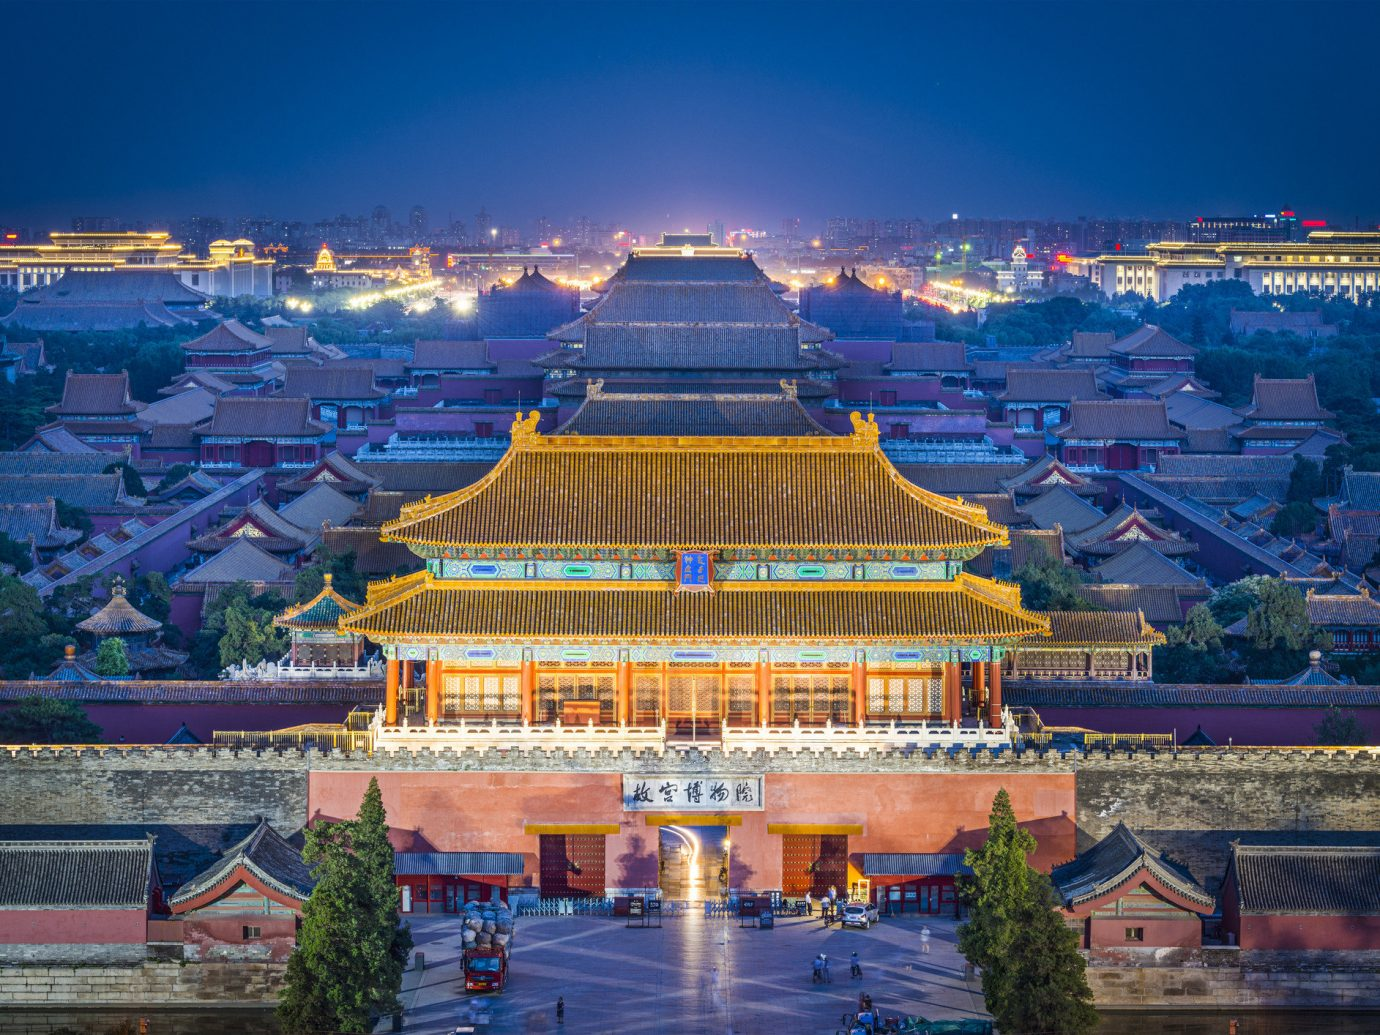 Trip Ideas outdoor sky landmark building cityscape City reflection night tourism evening temple palace place of worship stadium